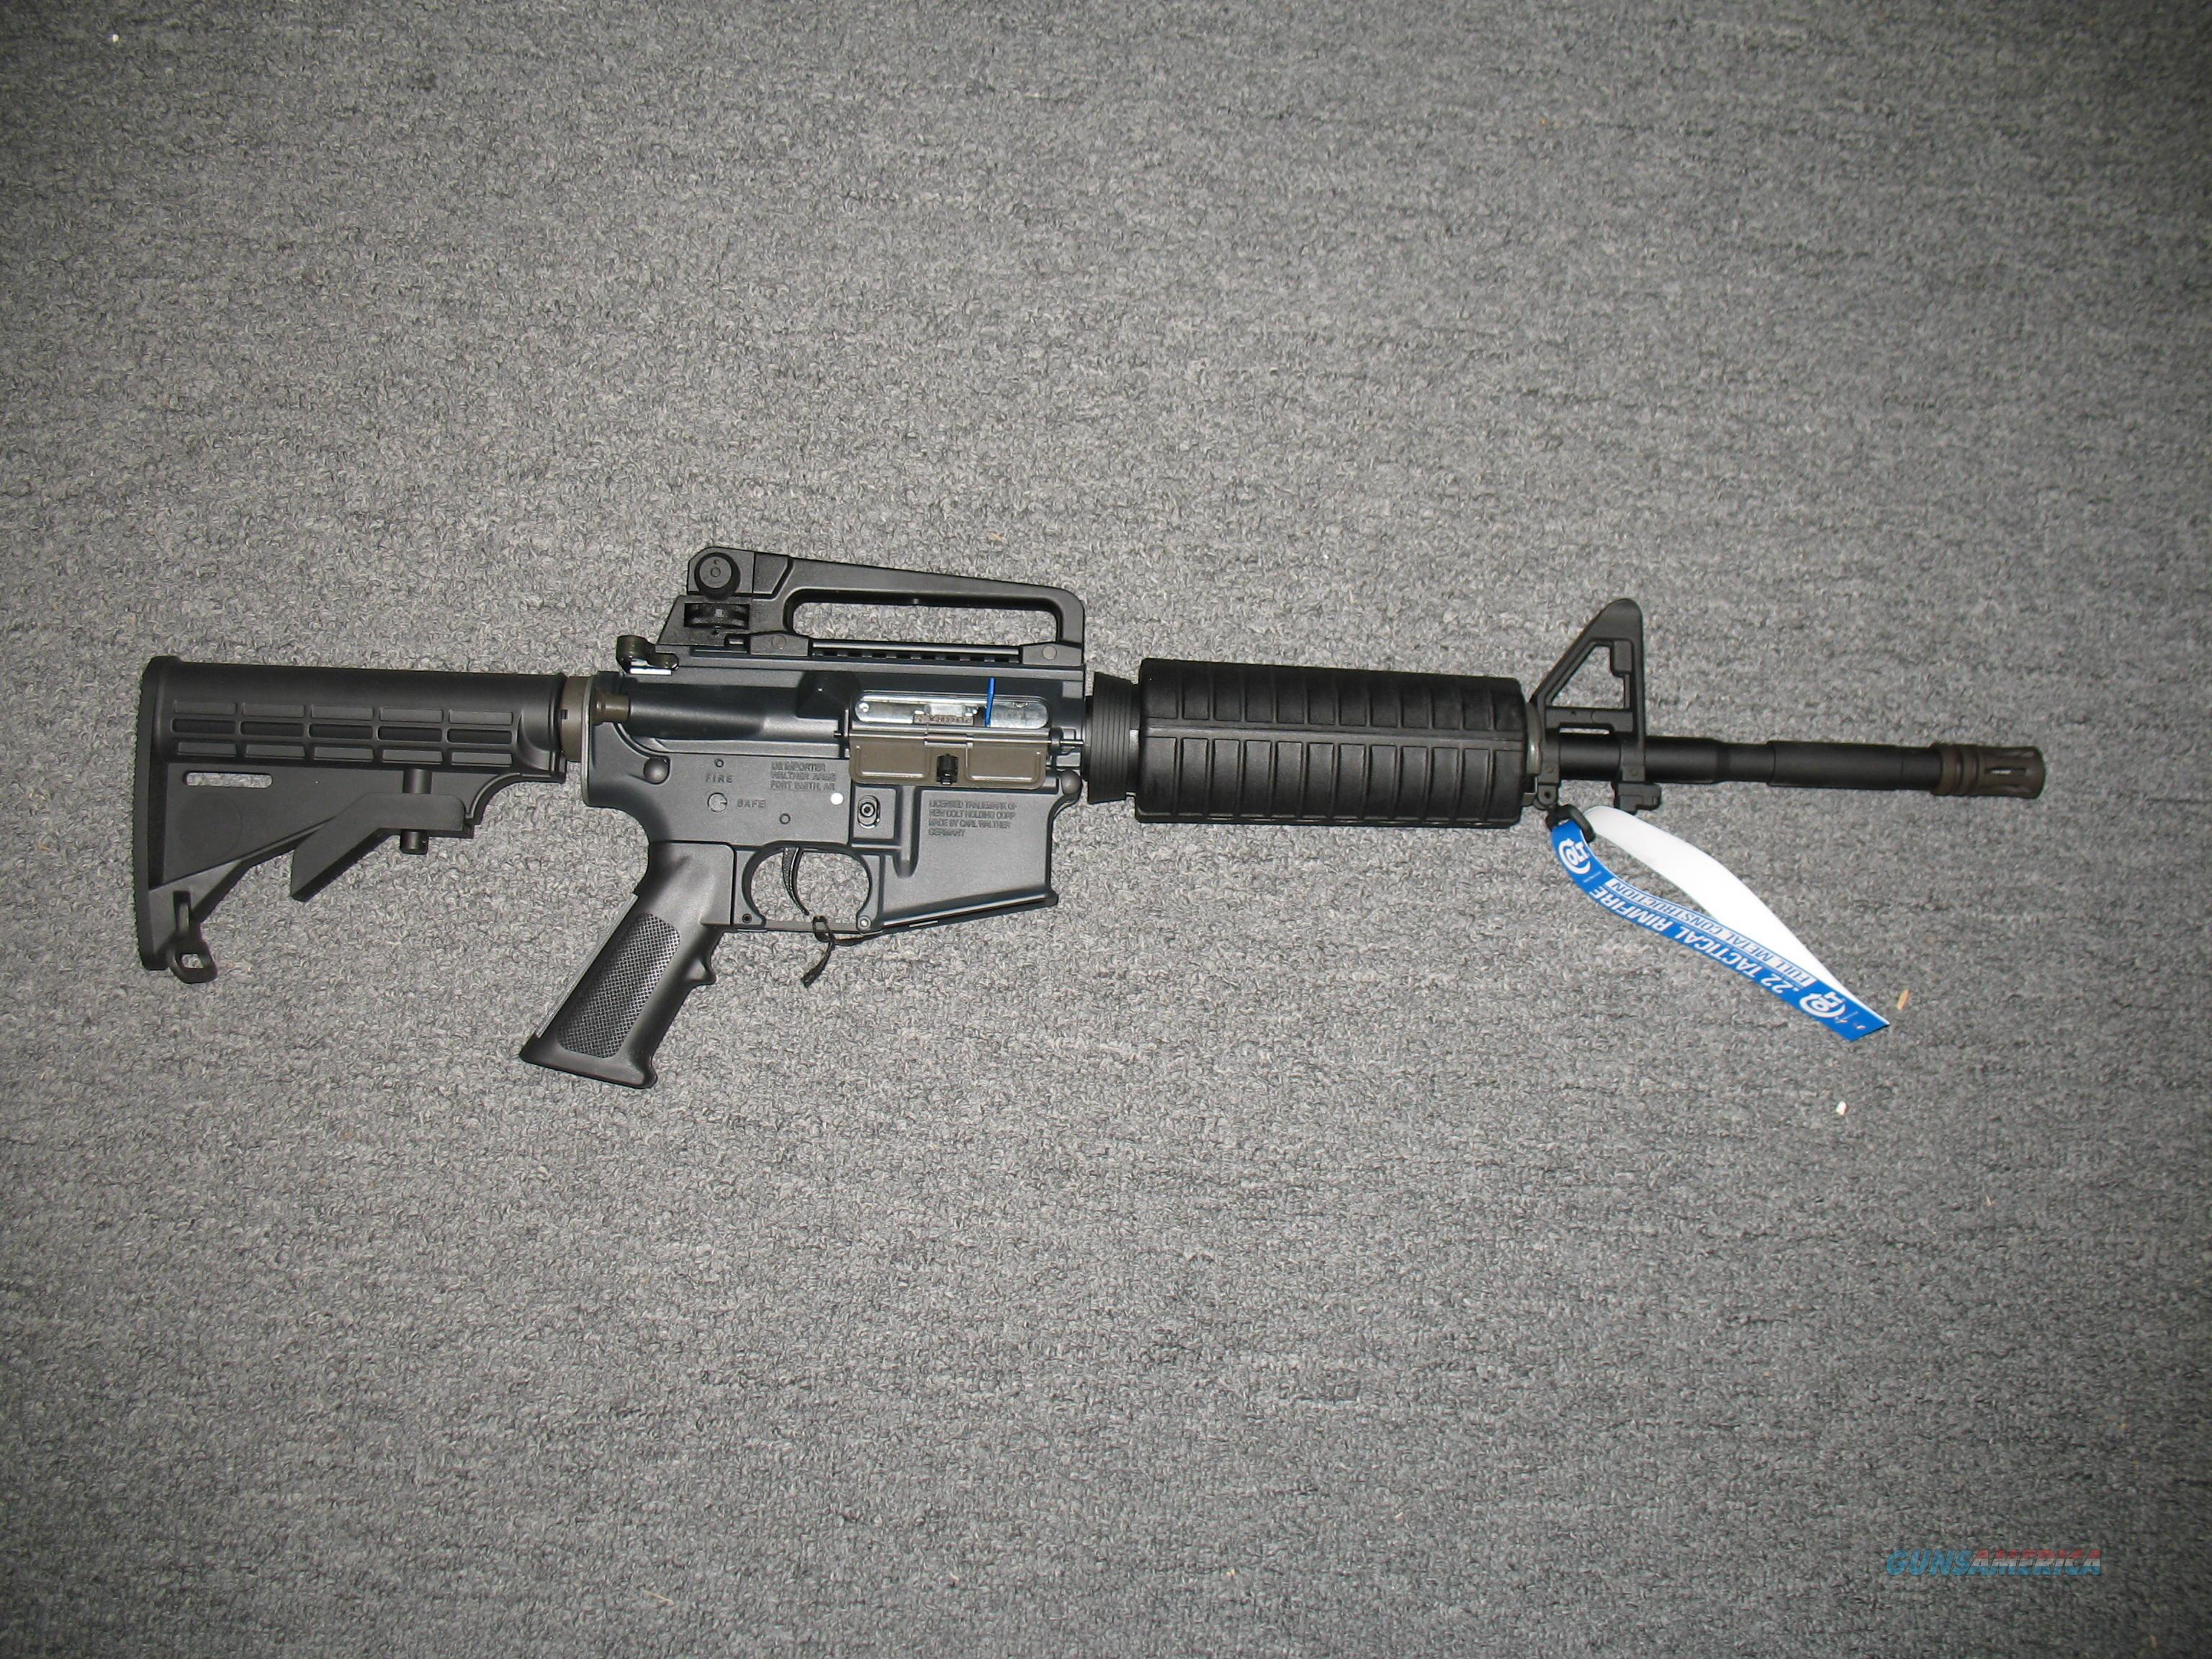 M4 Carbine  .22lr  Guns > Rifles > Colt Military/Tactical Rifles